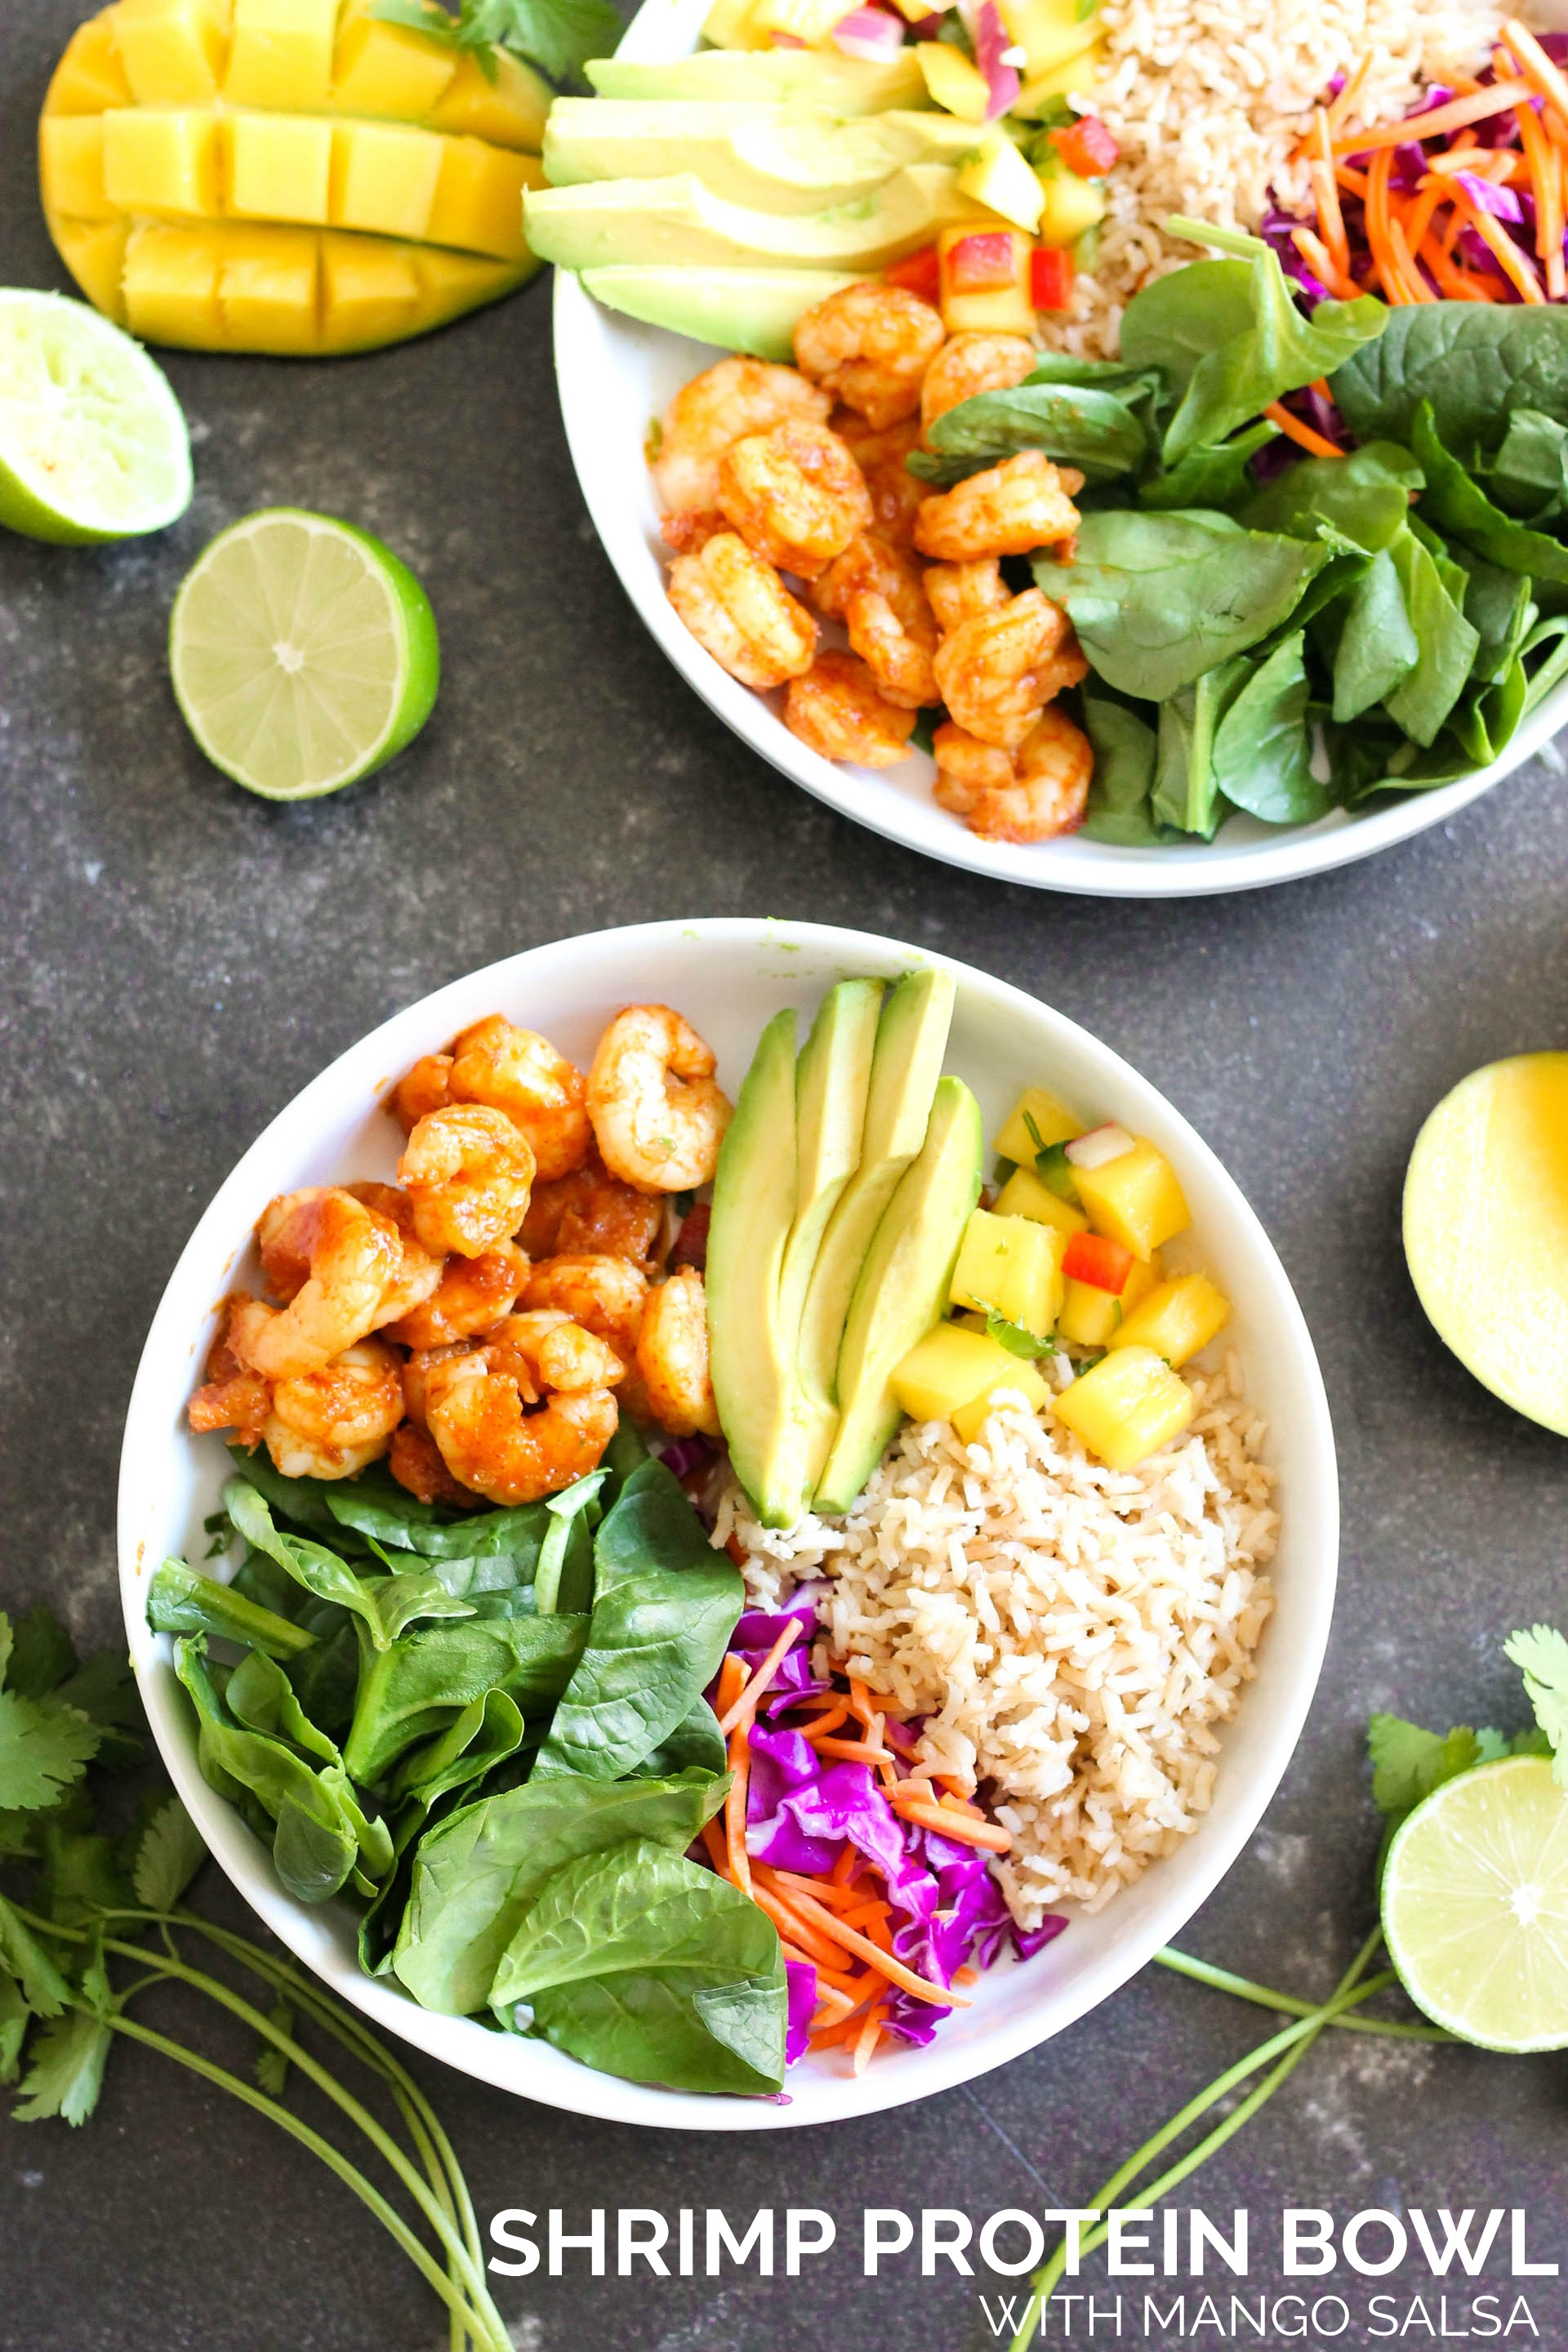 Shrimp Protein Bowls with Mango Salsa in a white bowl